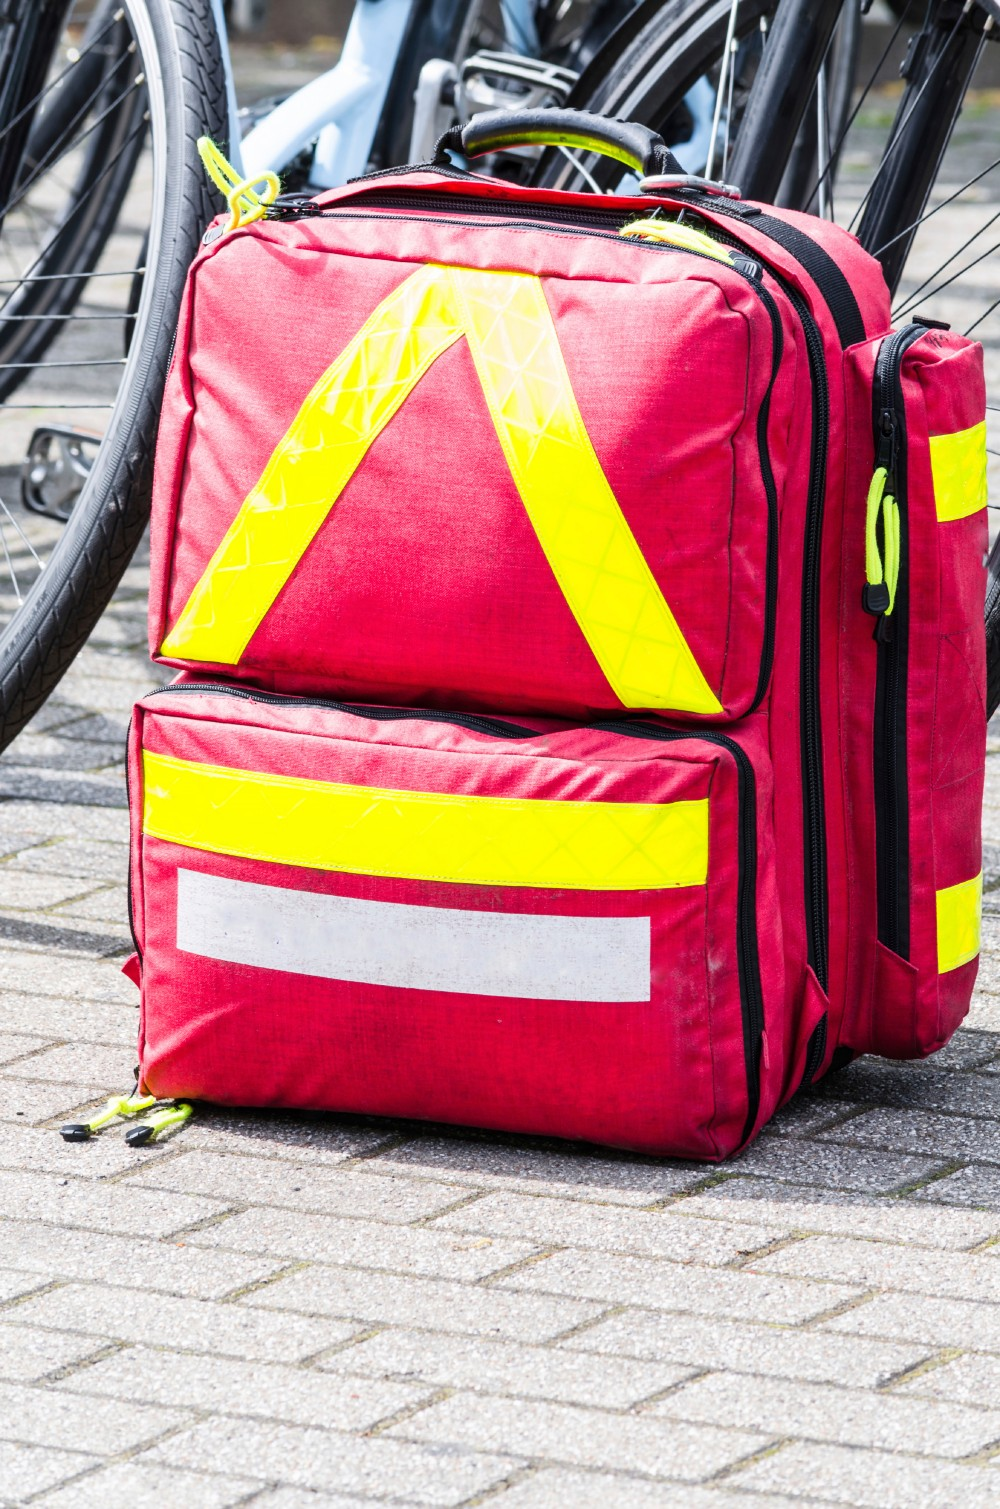 Store your emergency kit items in a bin for the home or office. When you're on the road or outdoors and want a more portable option, a backpack is a convenient solution.